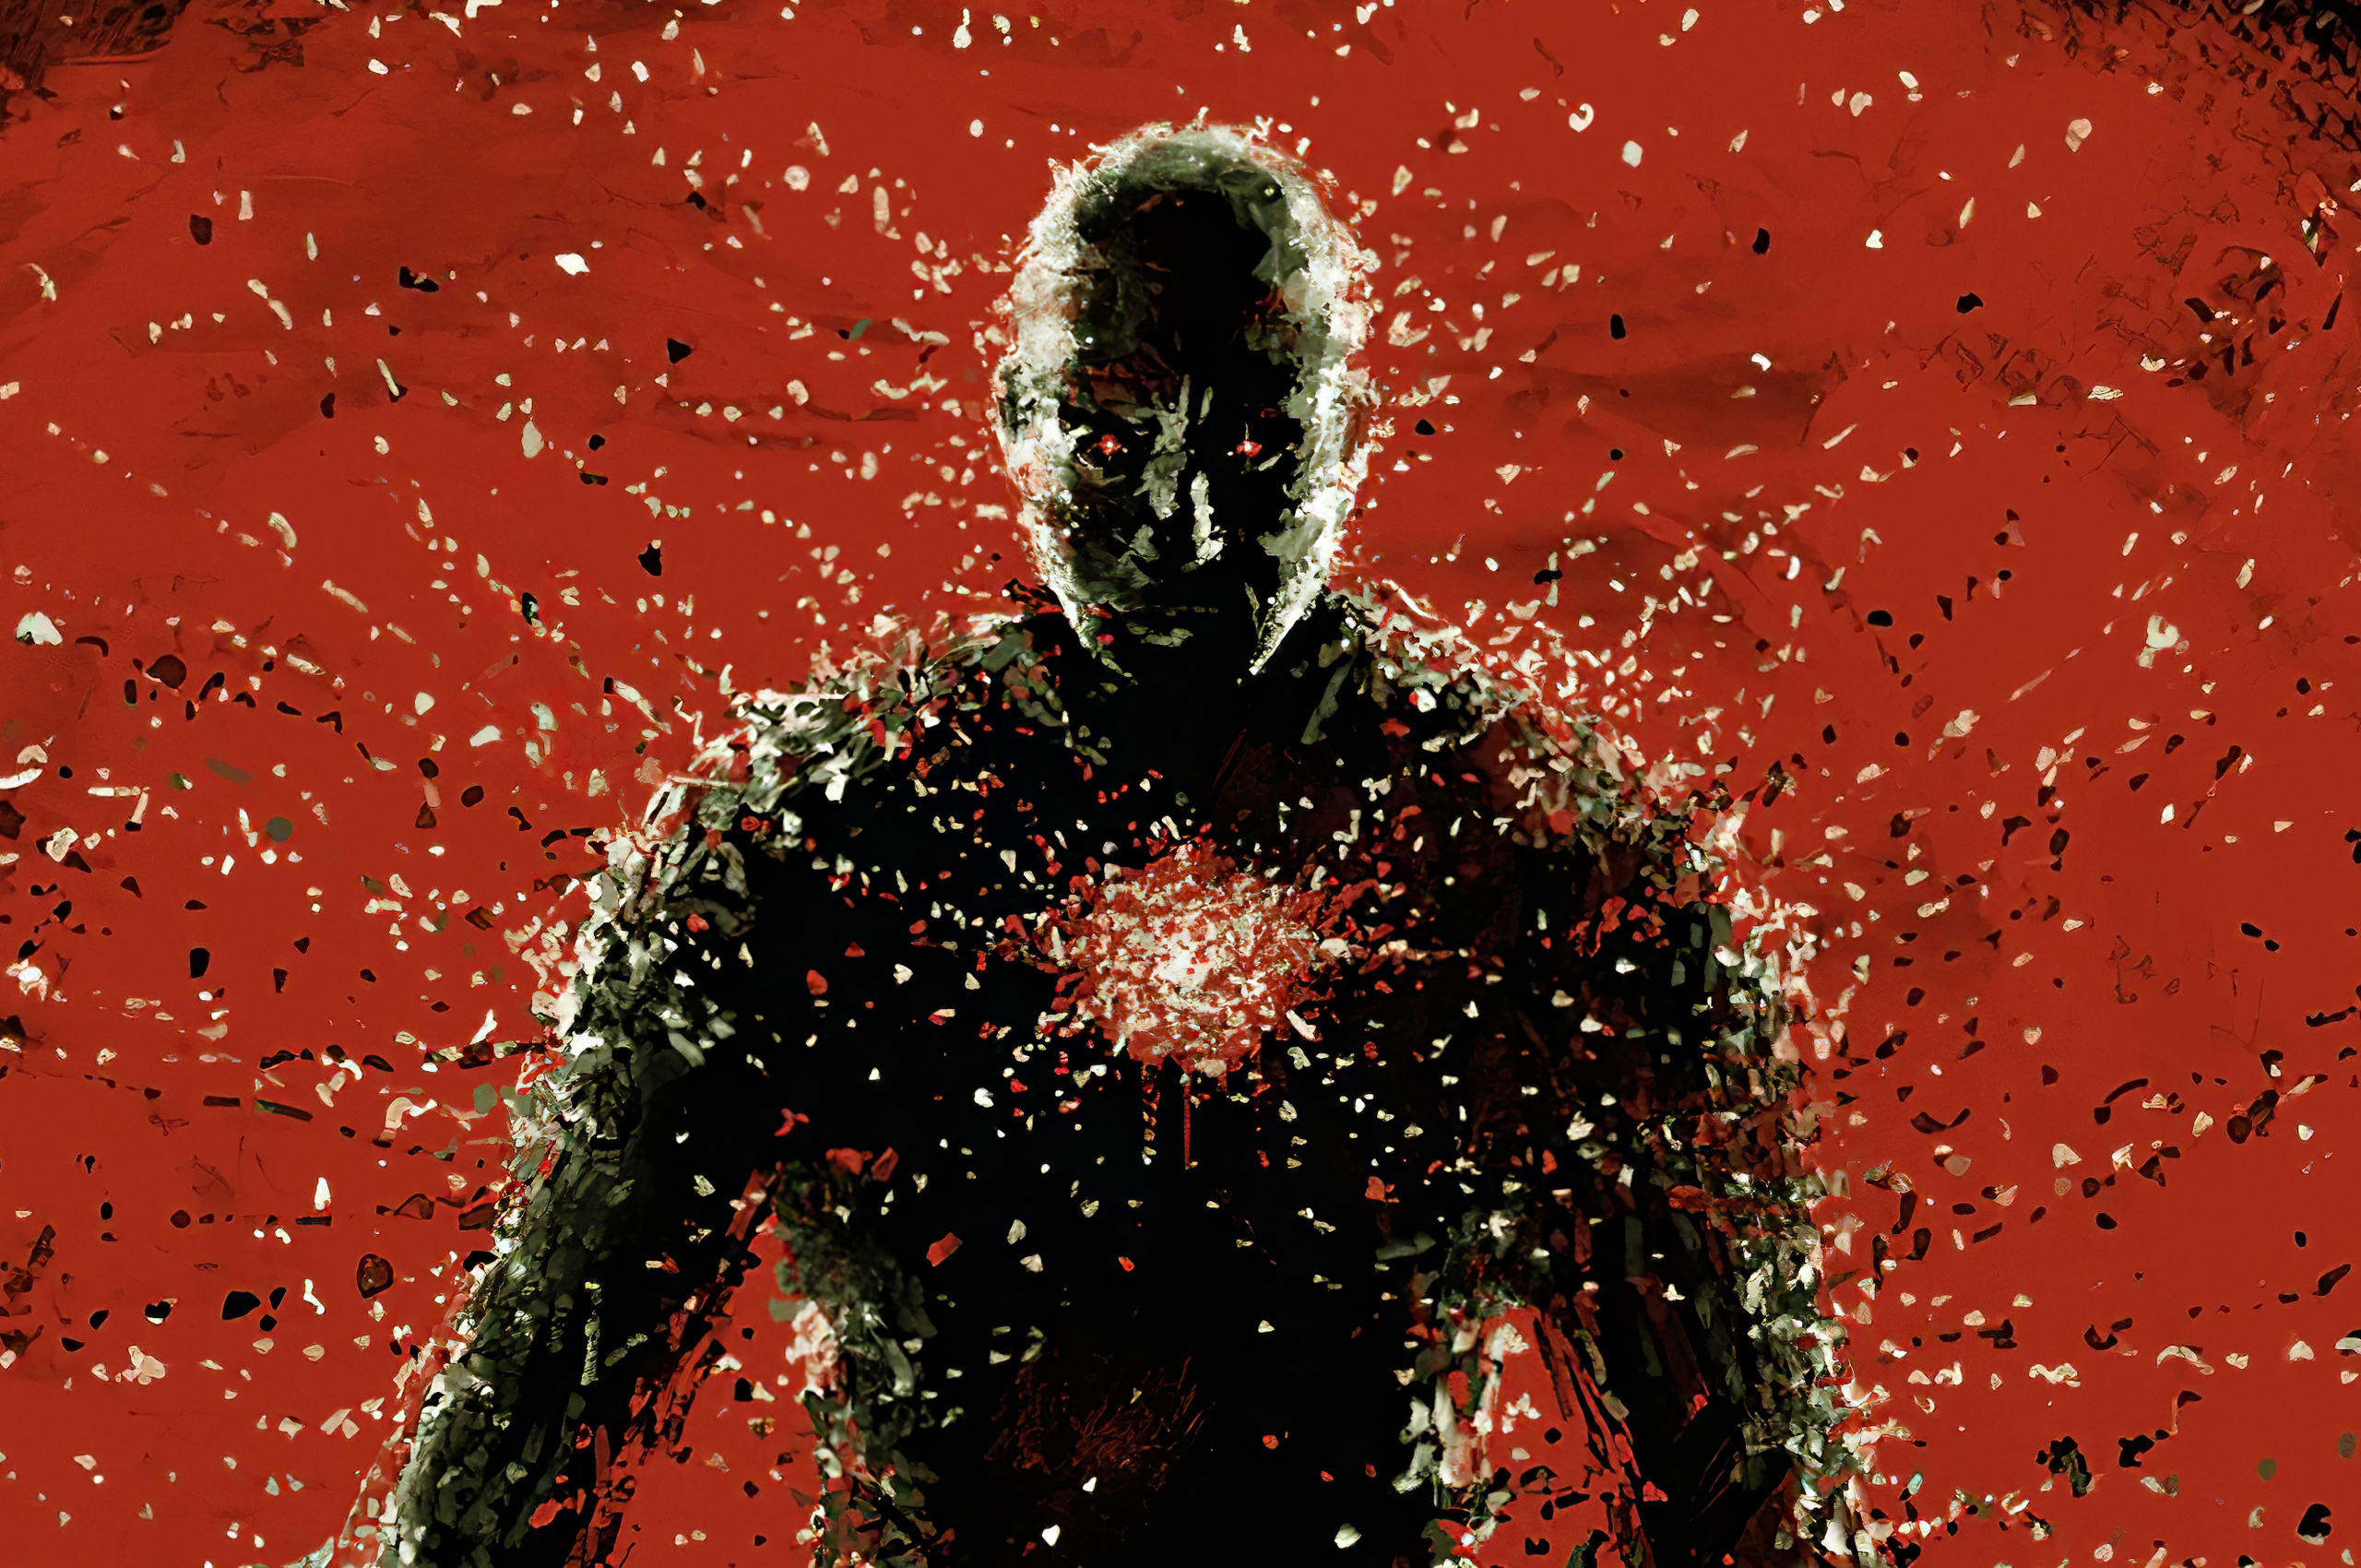 bloodshot-2020-4k-artwork-sn.jpg